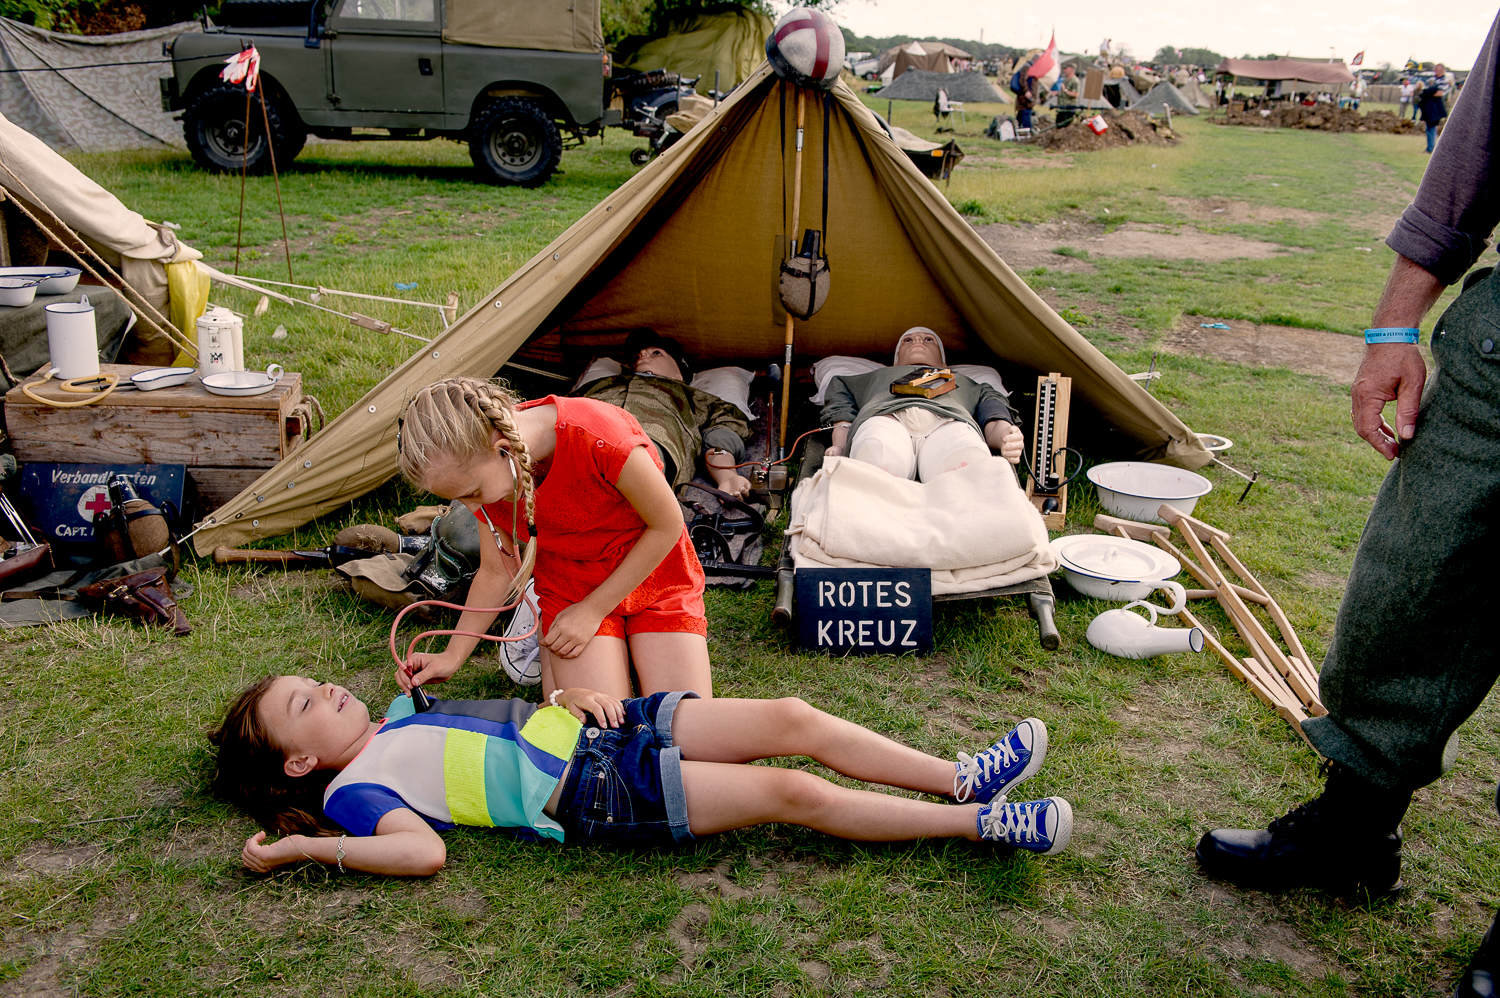 Girls playing in front of a display of a German field hospital tent. Re-enactment event in Essex